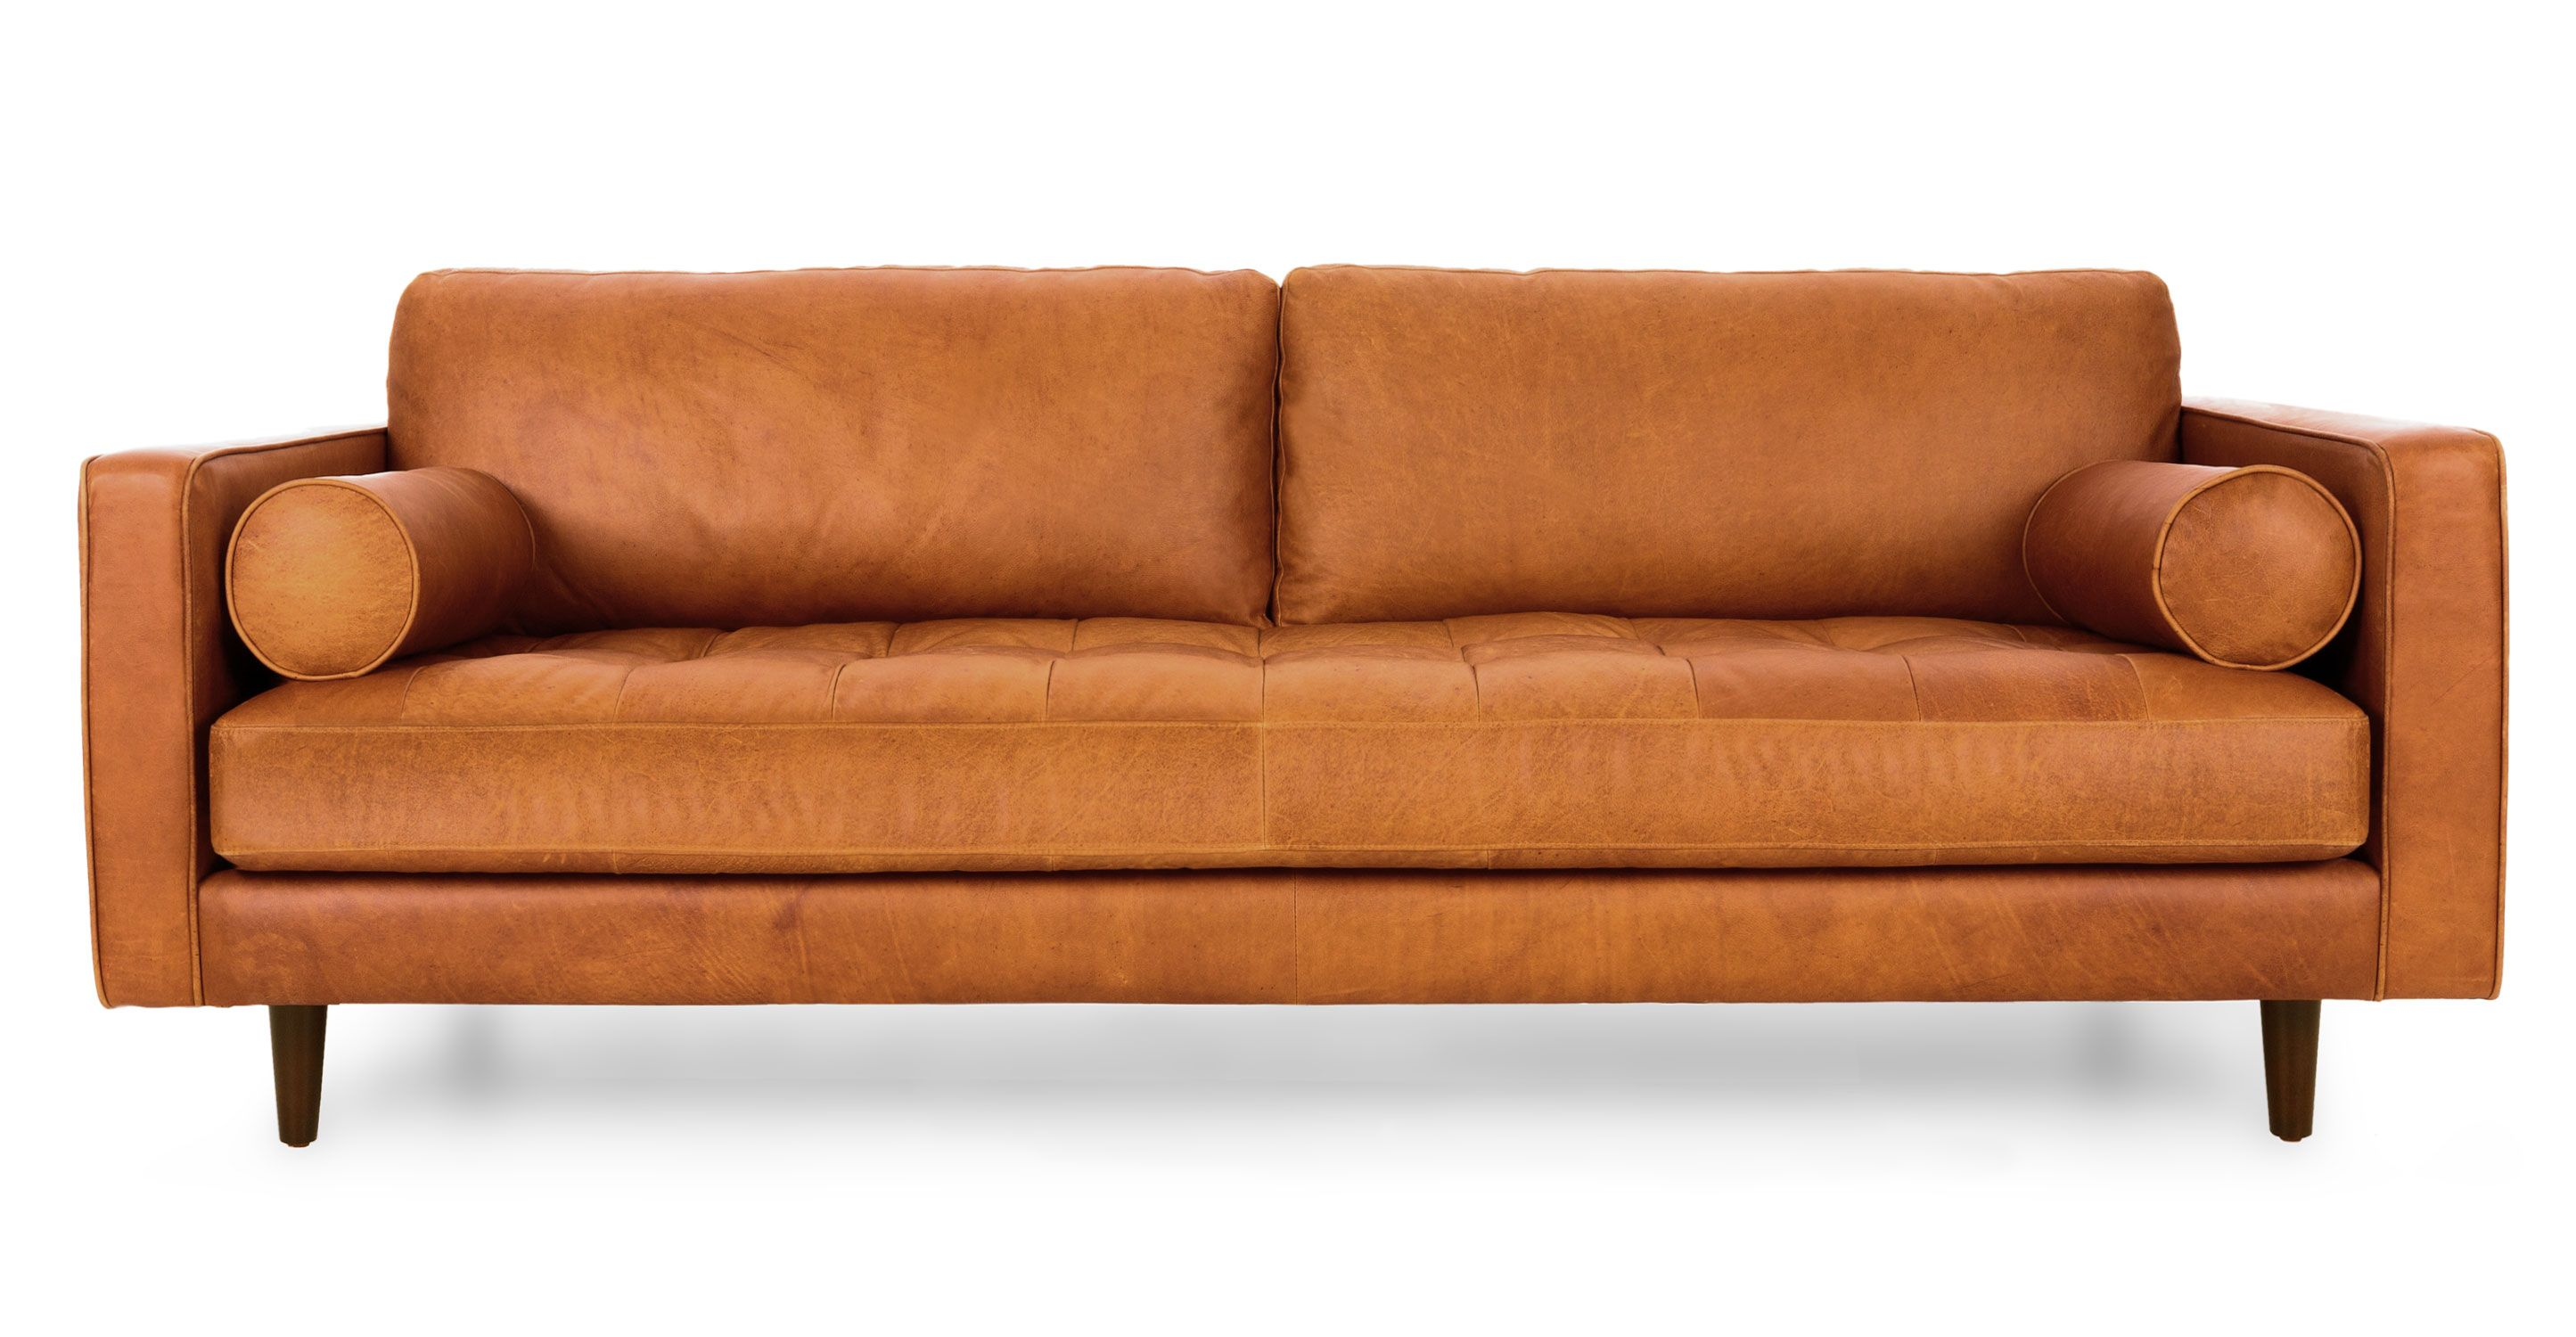 tan brown leather sofa italian leather article sven modern furniture tan sofa. Black Bedroom Furniture Sets. Home Design Ideas